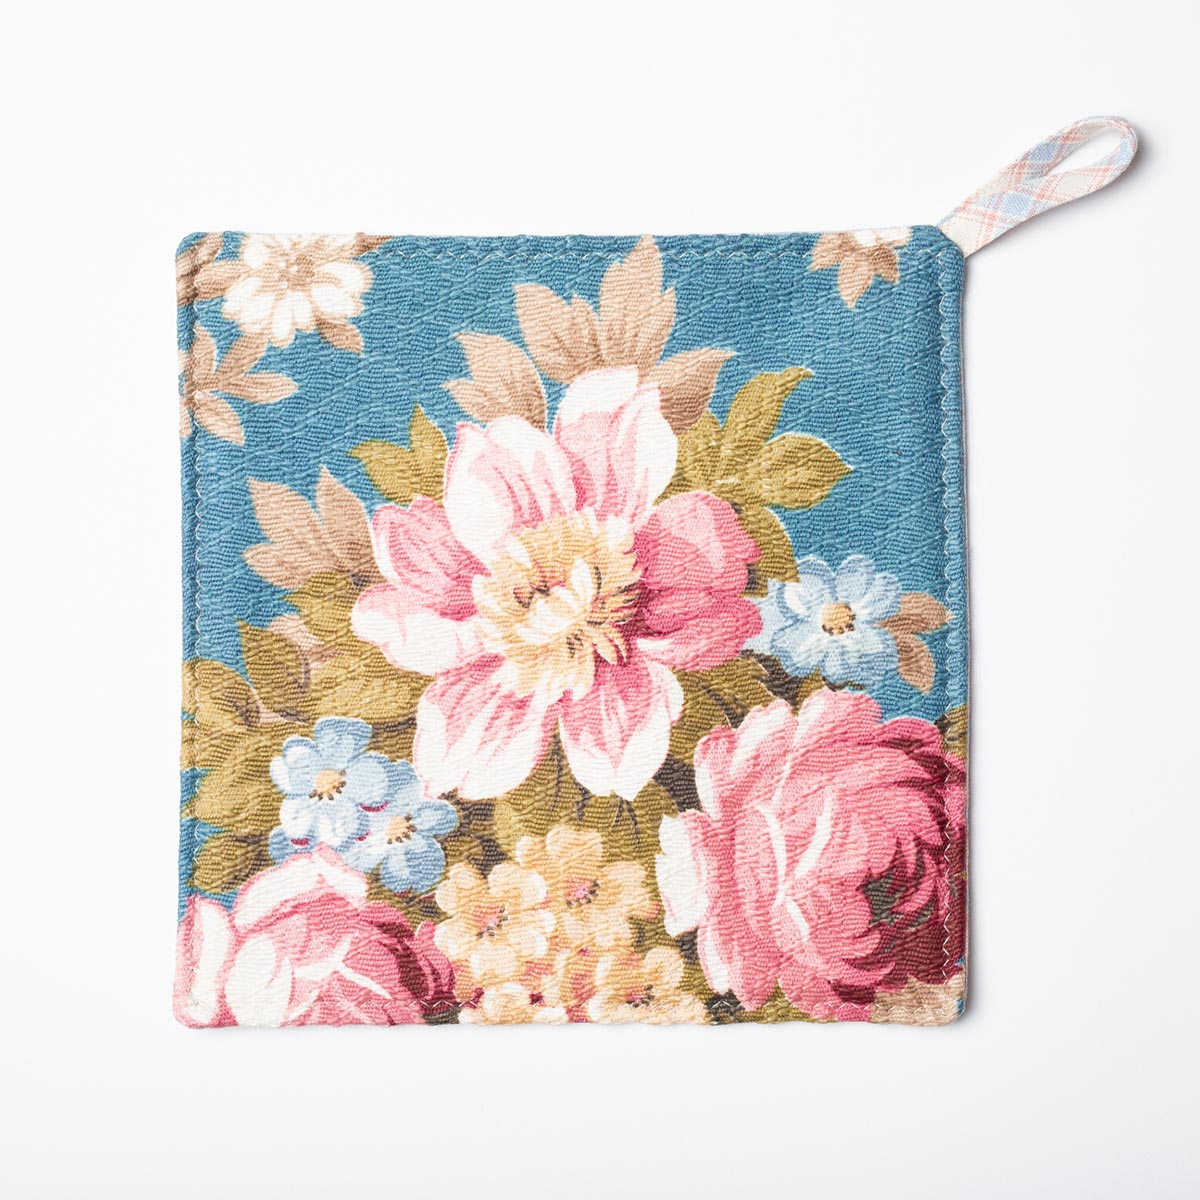 Potholders Floral Motif on Teal